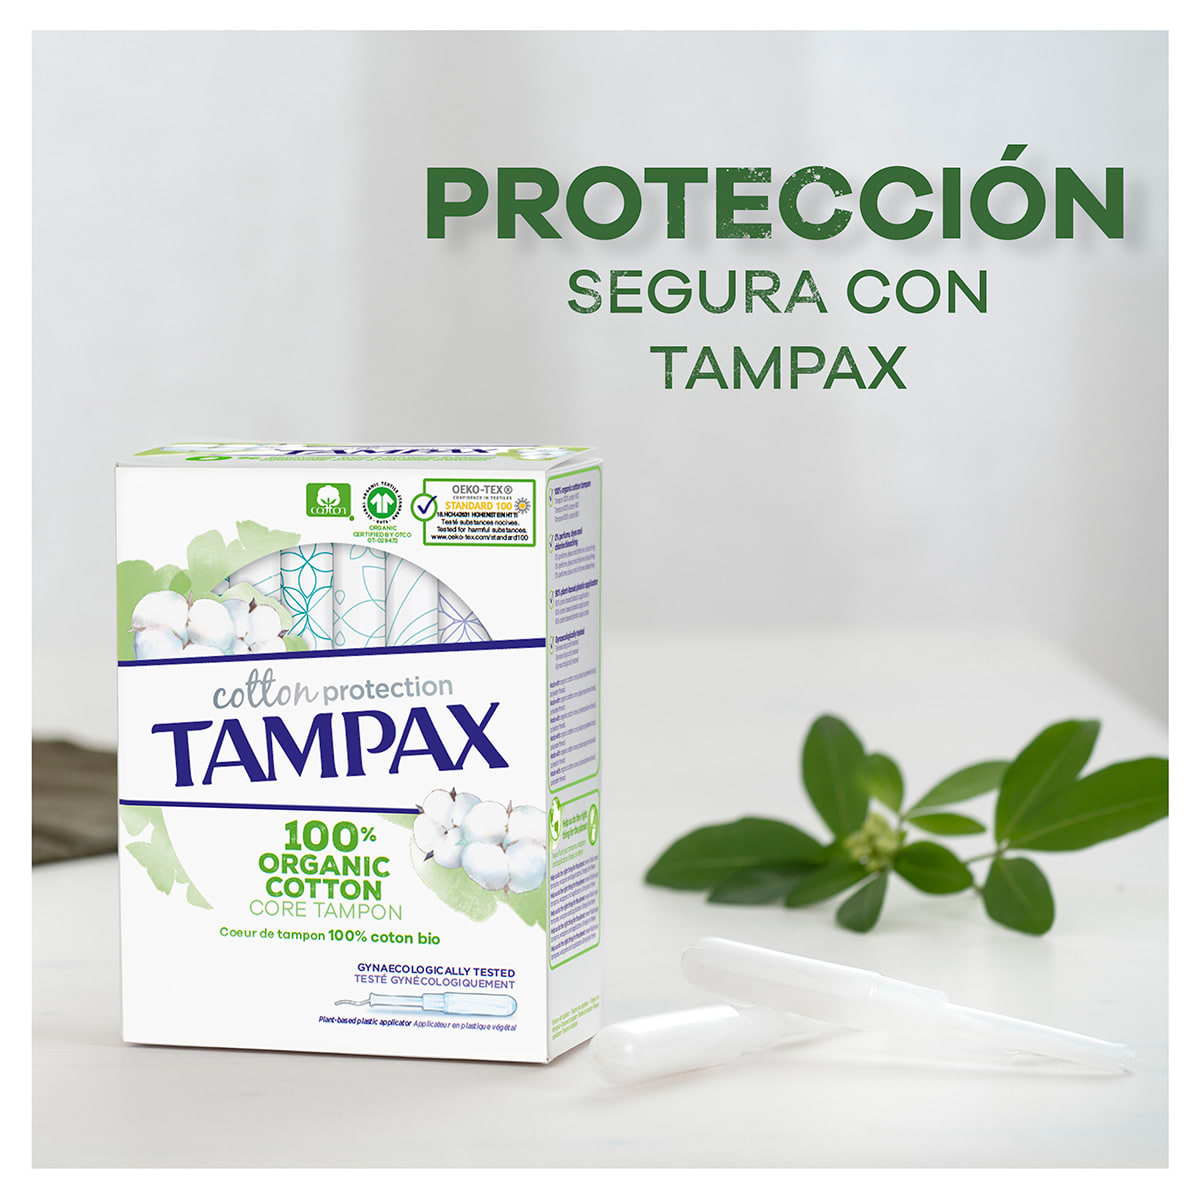 EVAX & TAMPAX Cotton Protection